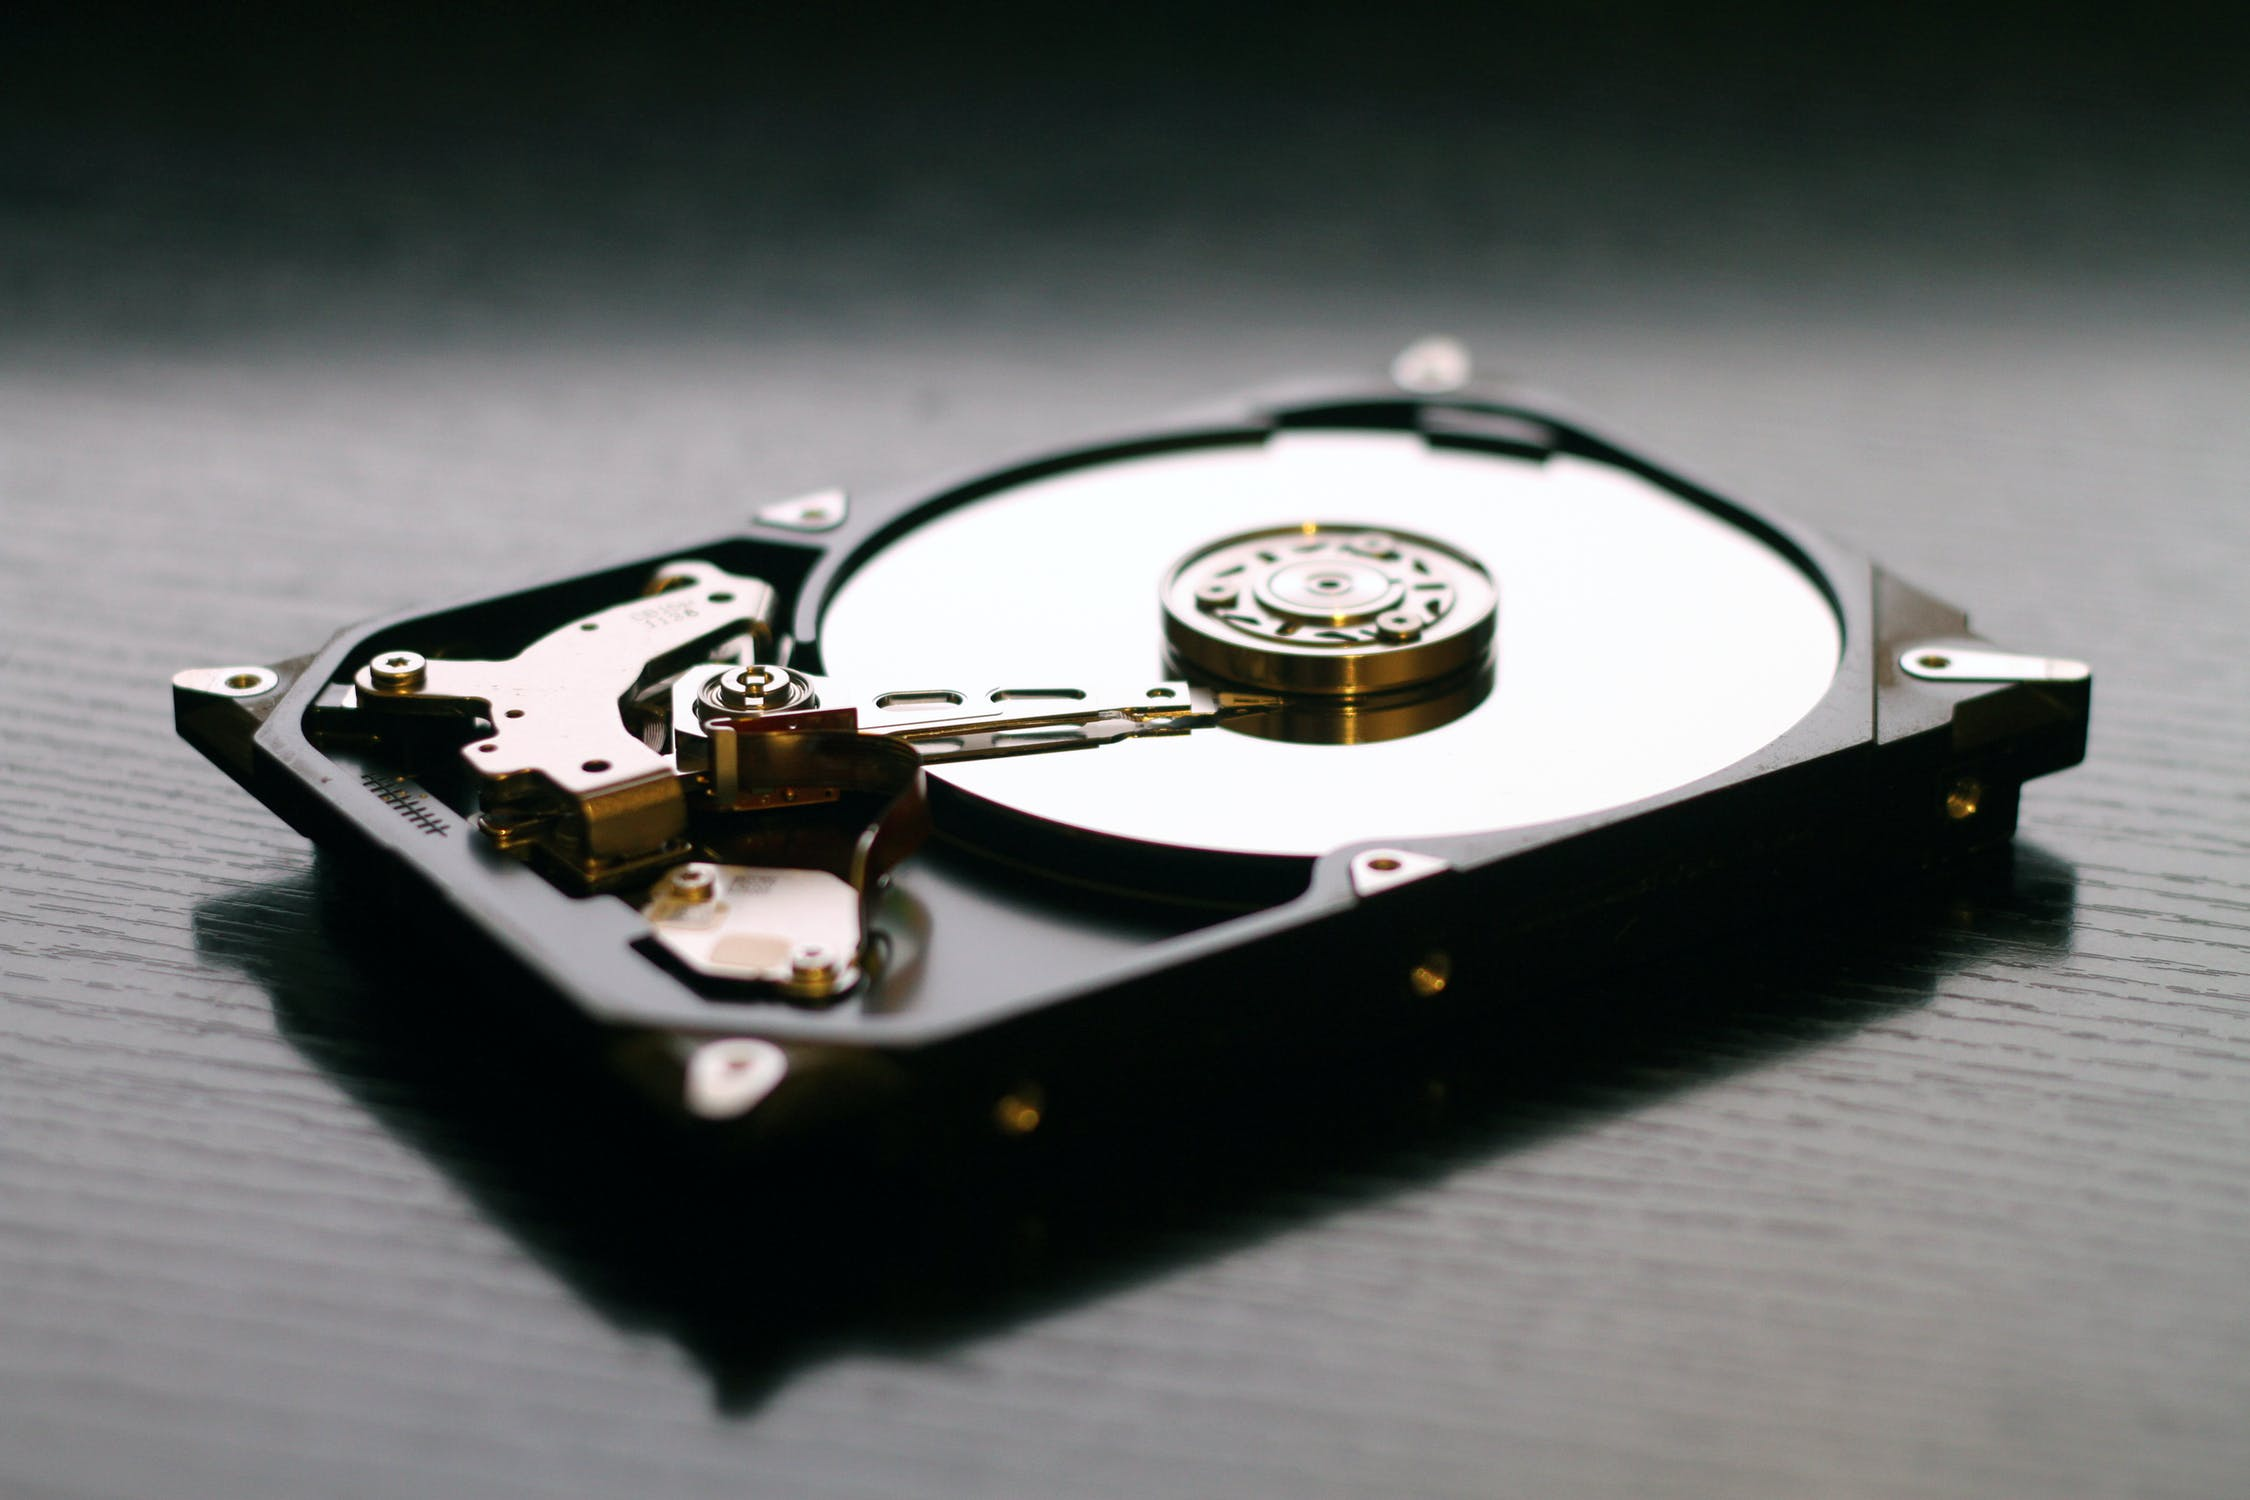 Hard Drive Data Recovery | Recover Data from Dead Hard Drive | Data Recovery Vision